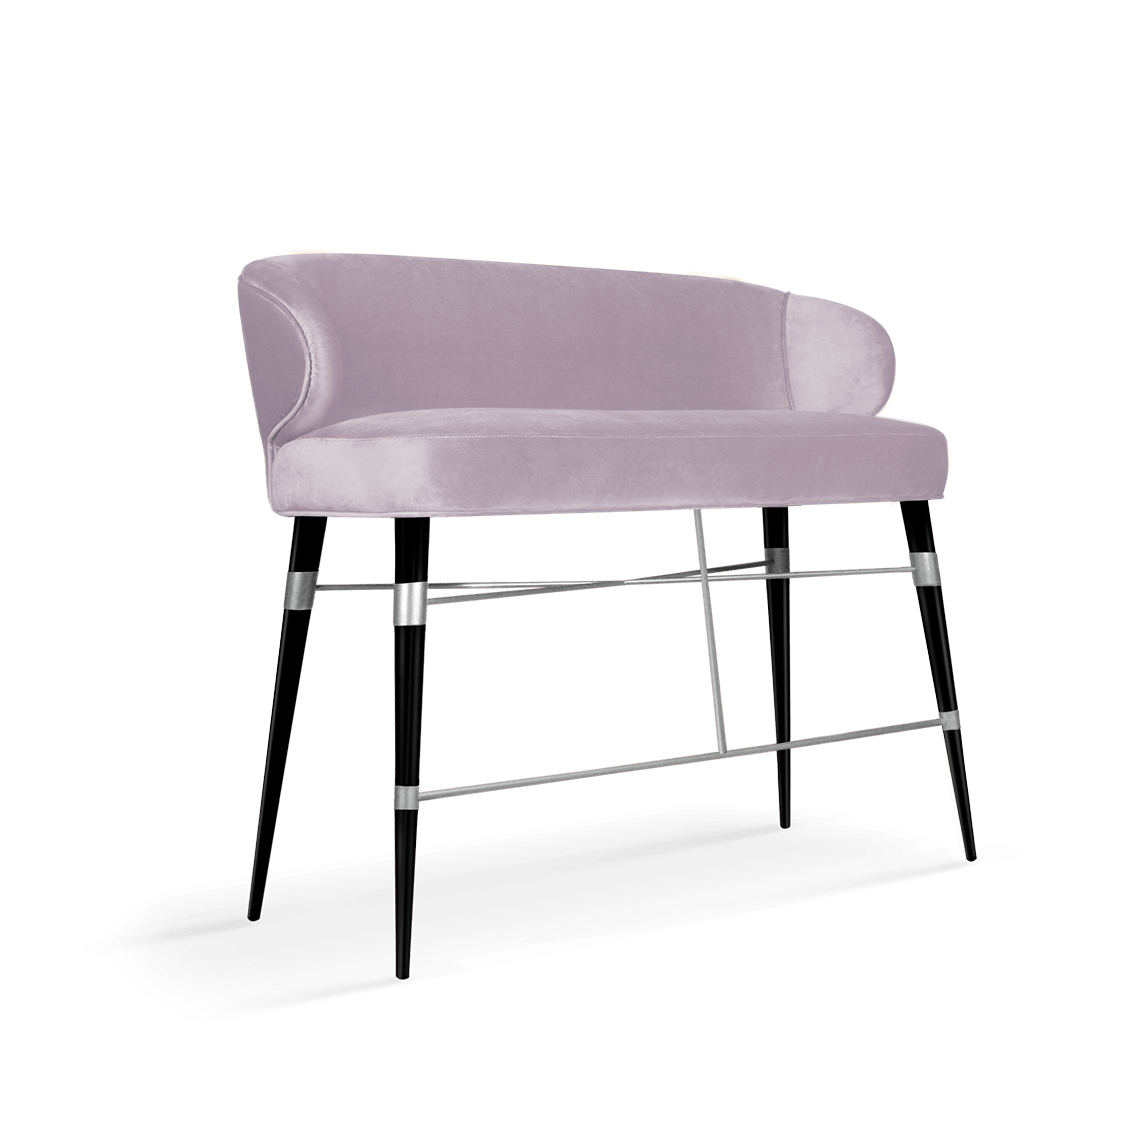 Louis Mid-Century Modern Twin Bar Chair in cassis cotton velvet